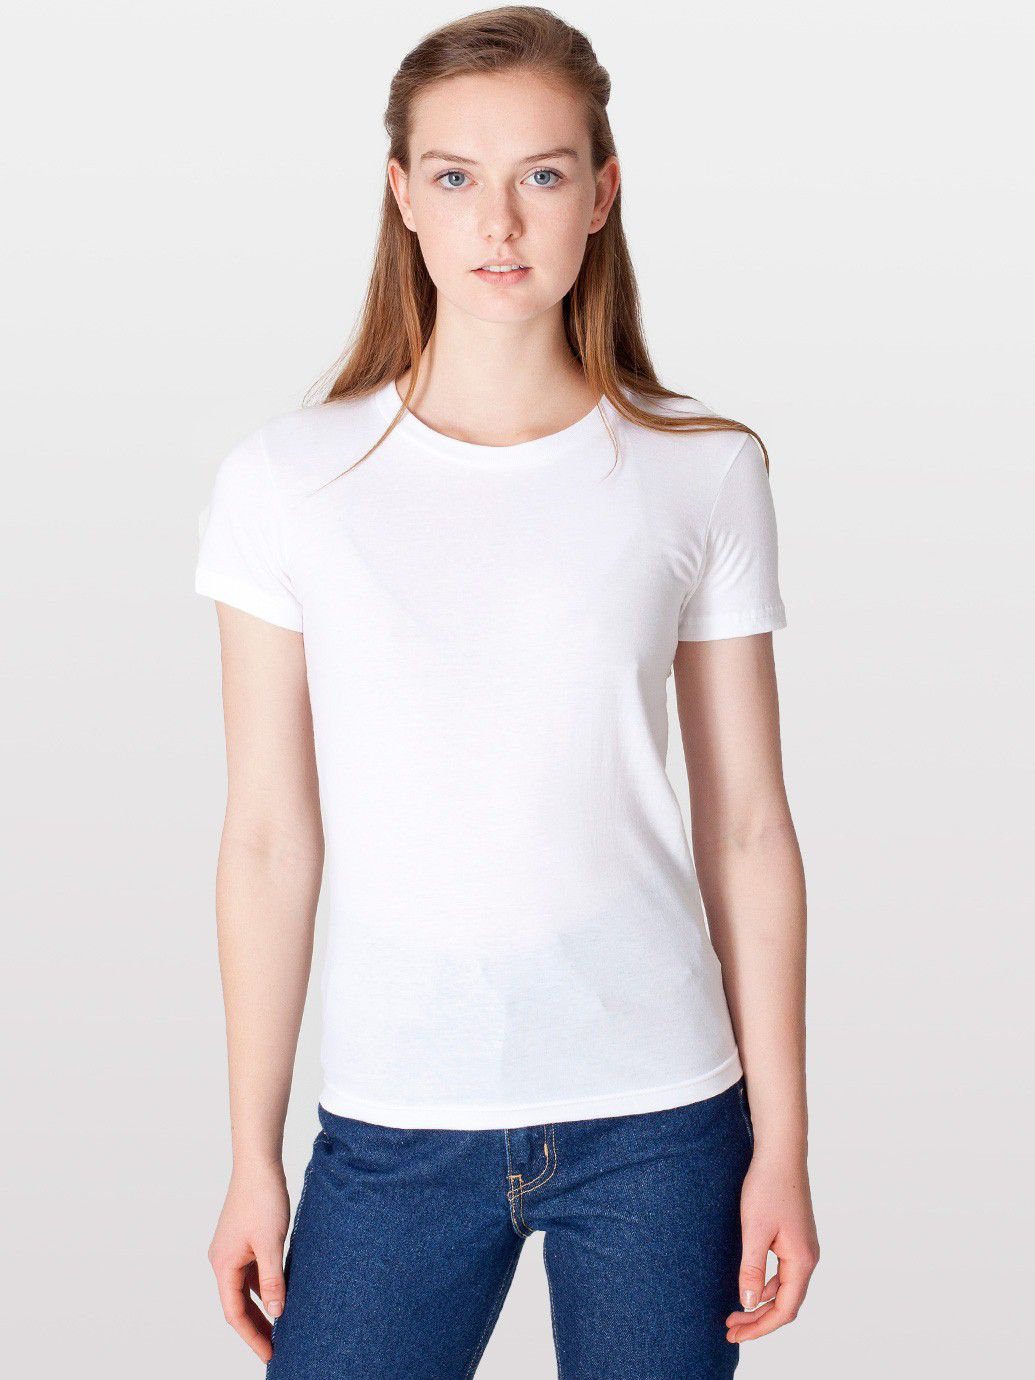 Fine Jersey Short Sleeve Women's T | American Apparel